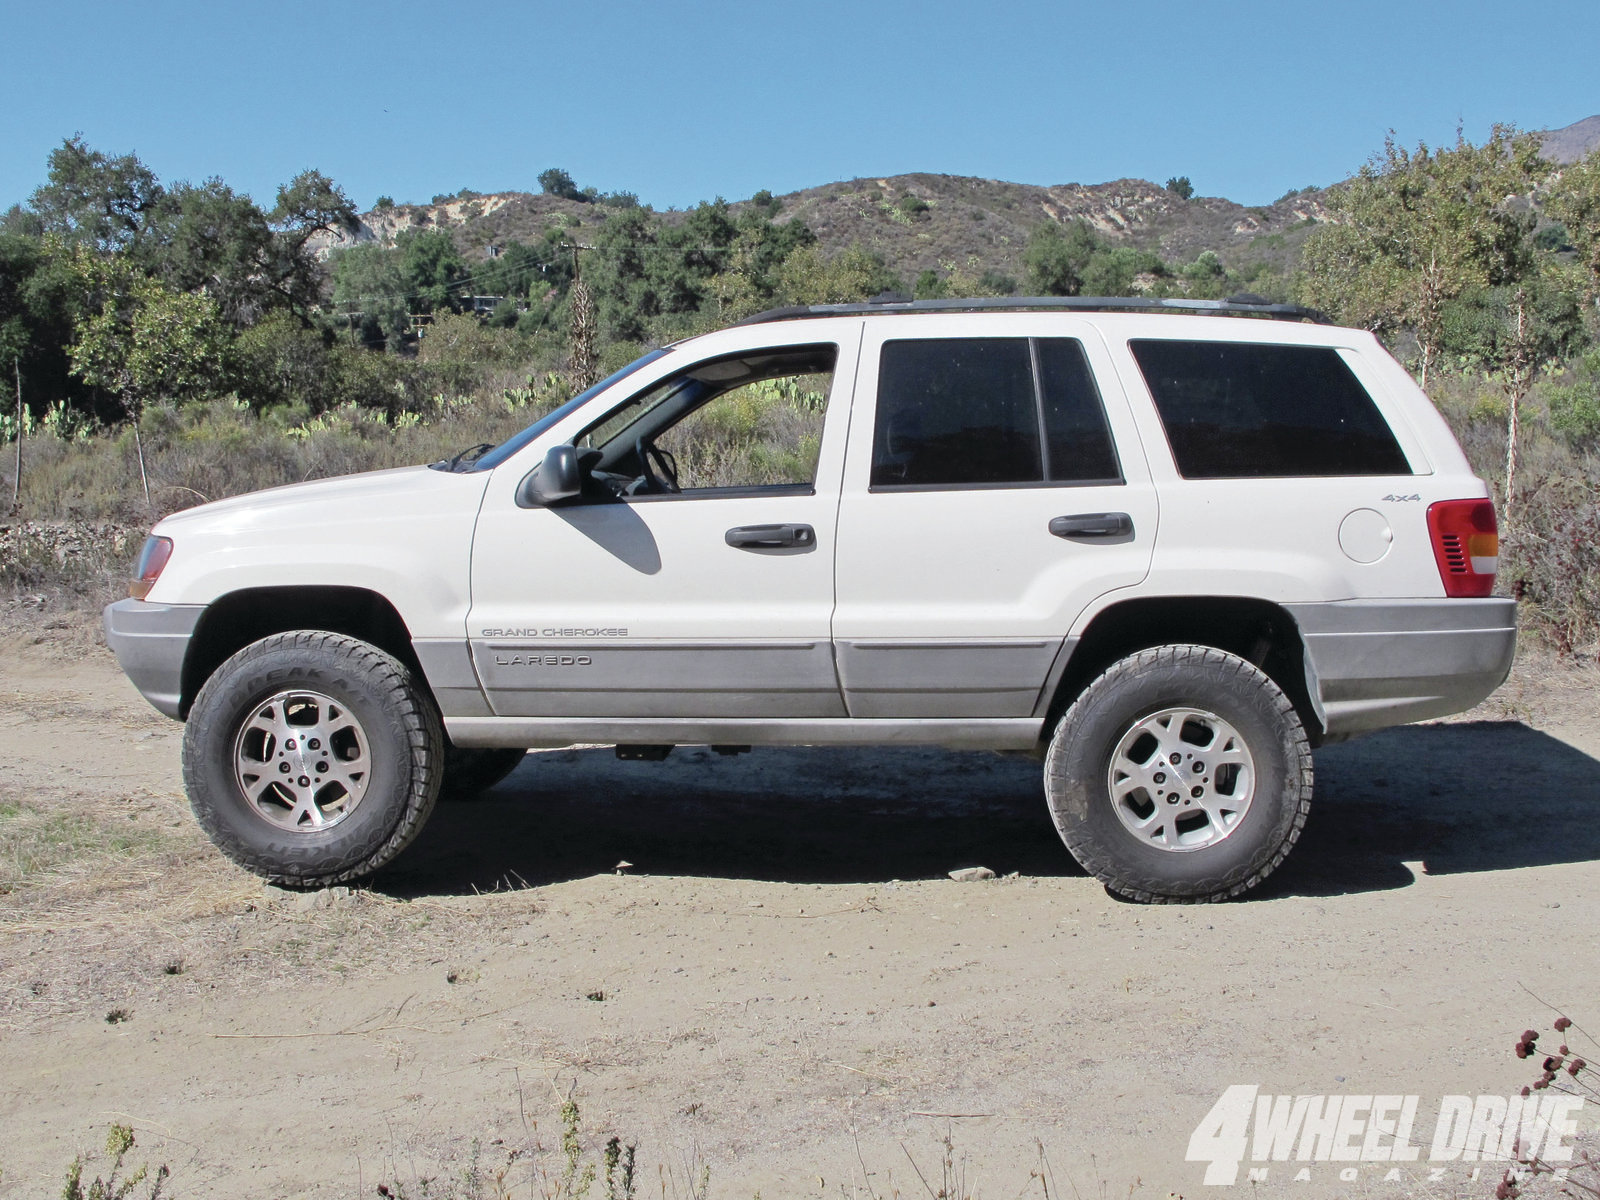 Lift Kits in addition Variable Valve Timing Control Solenoid Replacement Cost in addition 1509 Precision Fabrication Plus Rdp Xtreme Gm Solid Axle Swap Kit additionally Ogs151b Jks in addition K1018 Ft. on 1999 cherokee lift kit